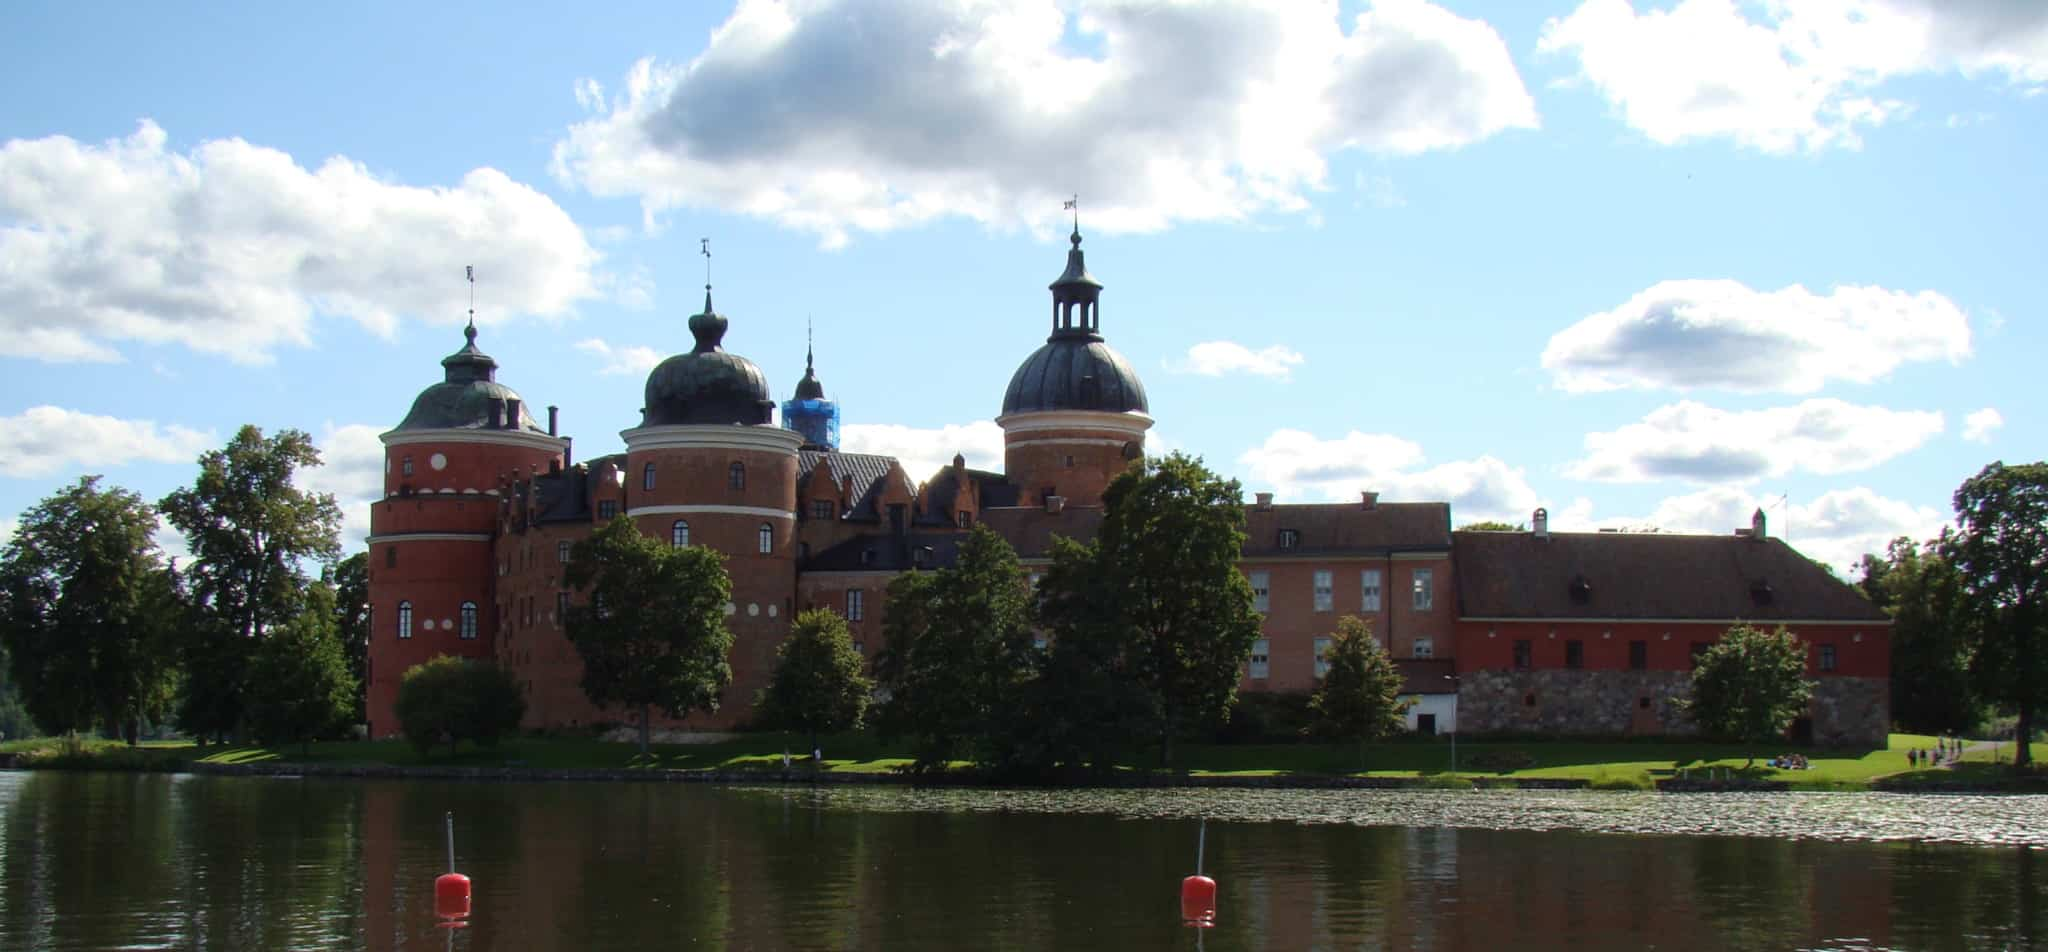 Gripsholm Castle was founded by Gustav Vasa himself in 1537. Here, among other things, one of Europe's best-preserved 18th-century theaters is housed in a circular Renaissance tower.